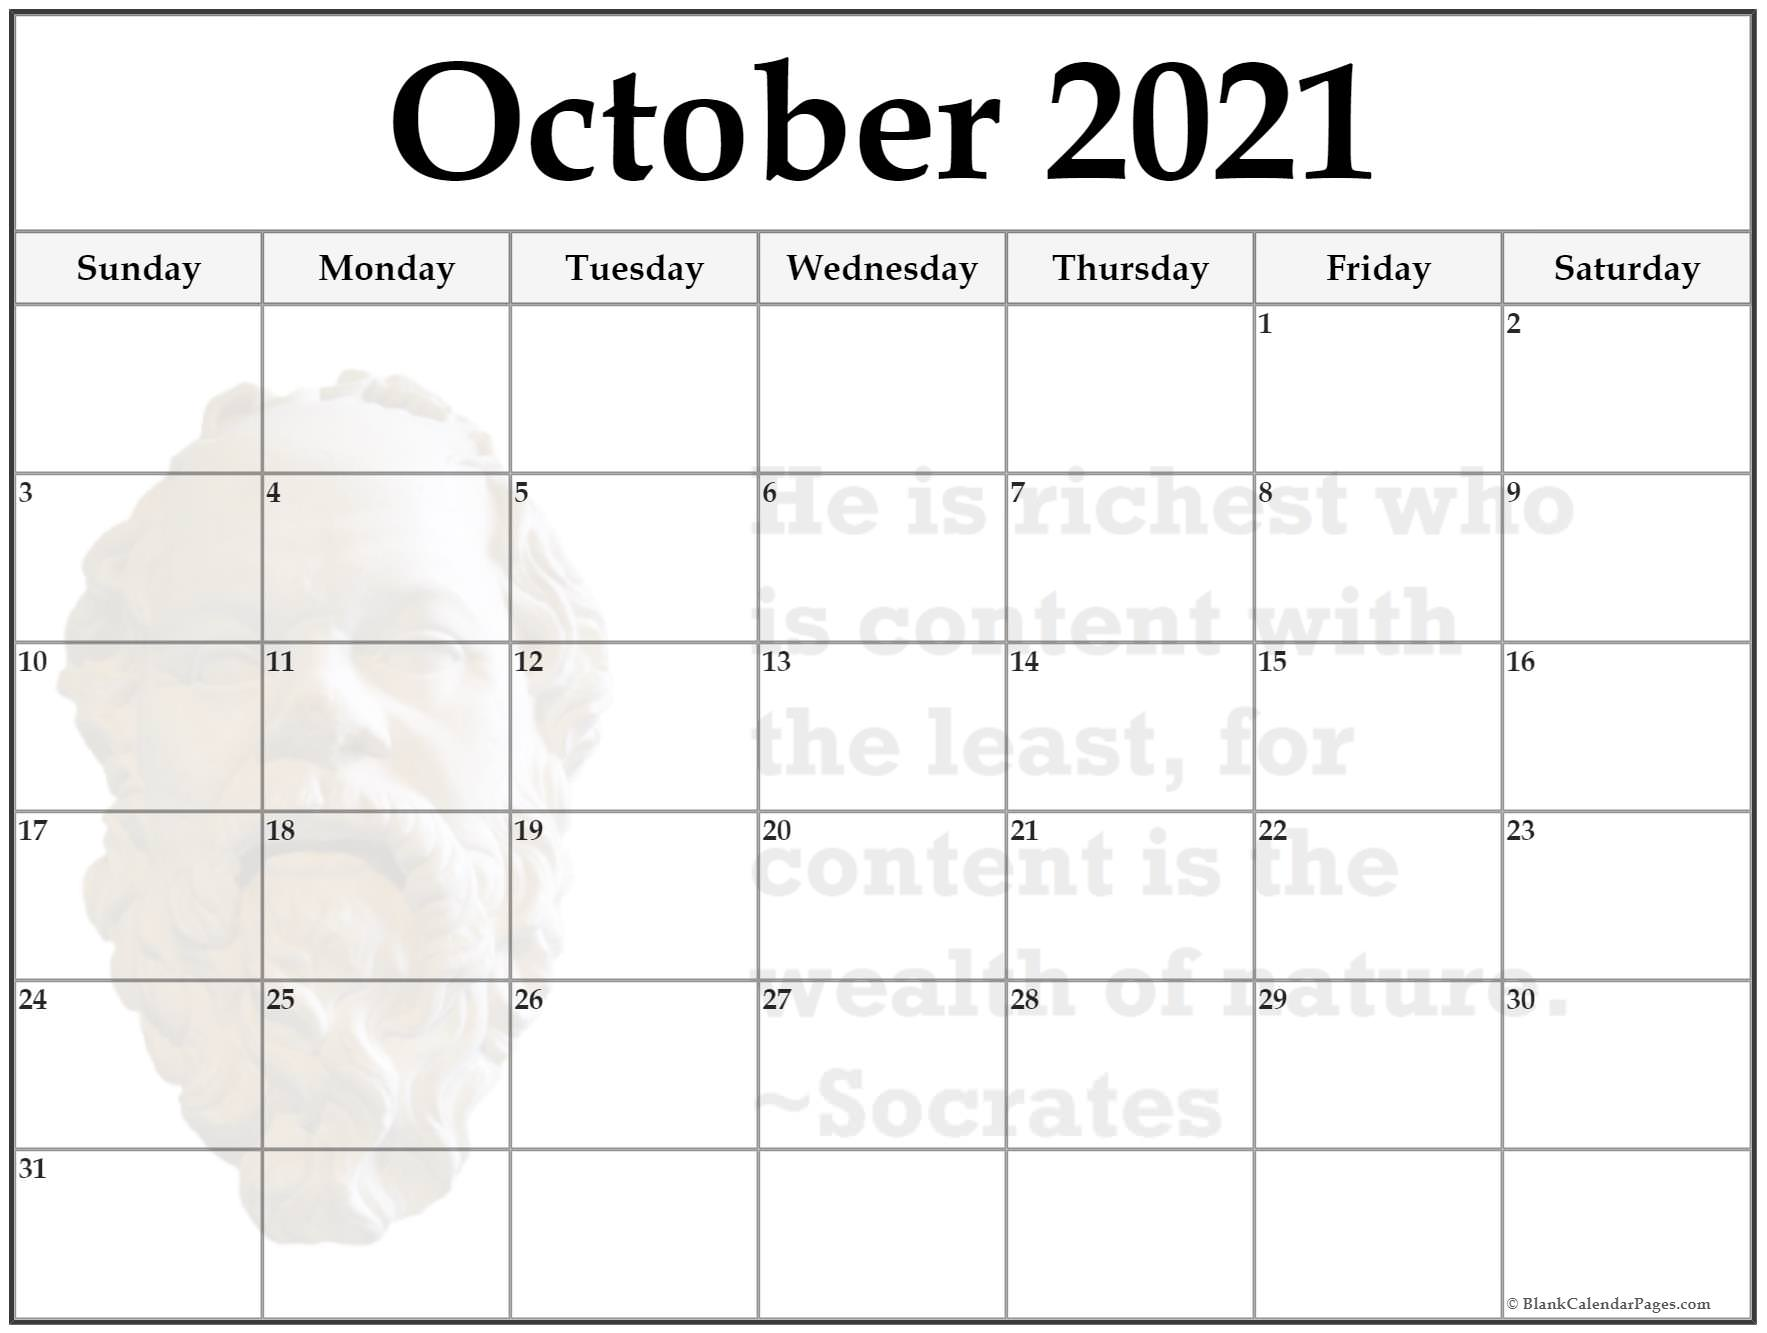 October 2021 monthly quote calendar template. He is richest who is content with the least, for content is the wealth of nature. ~Socrates